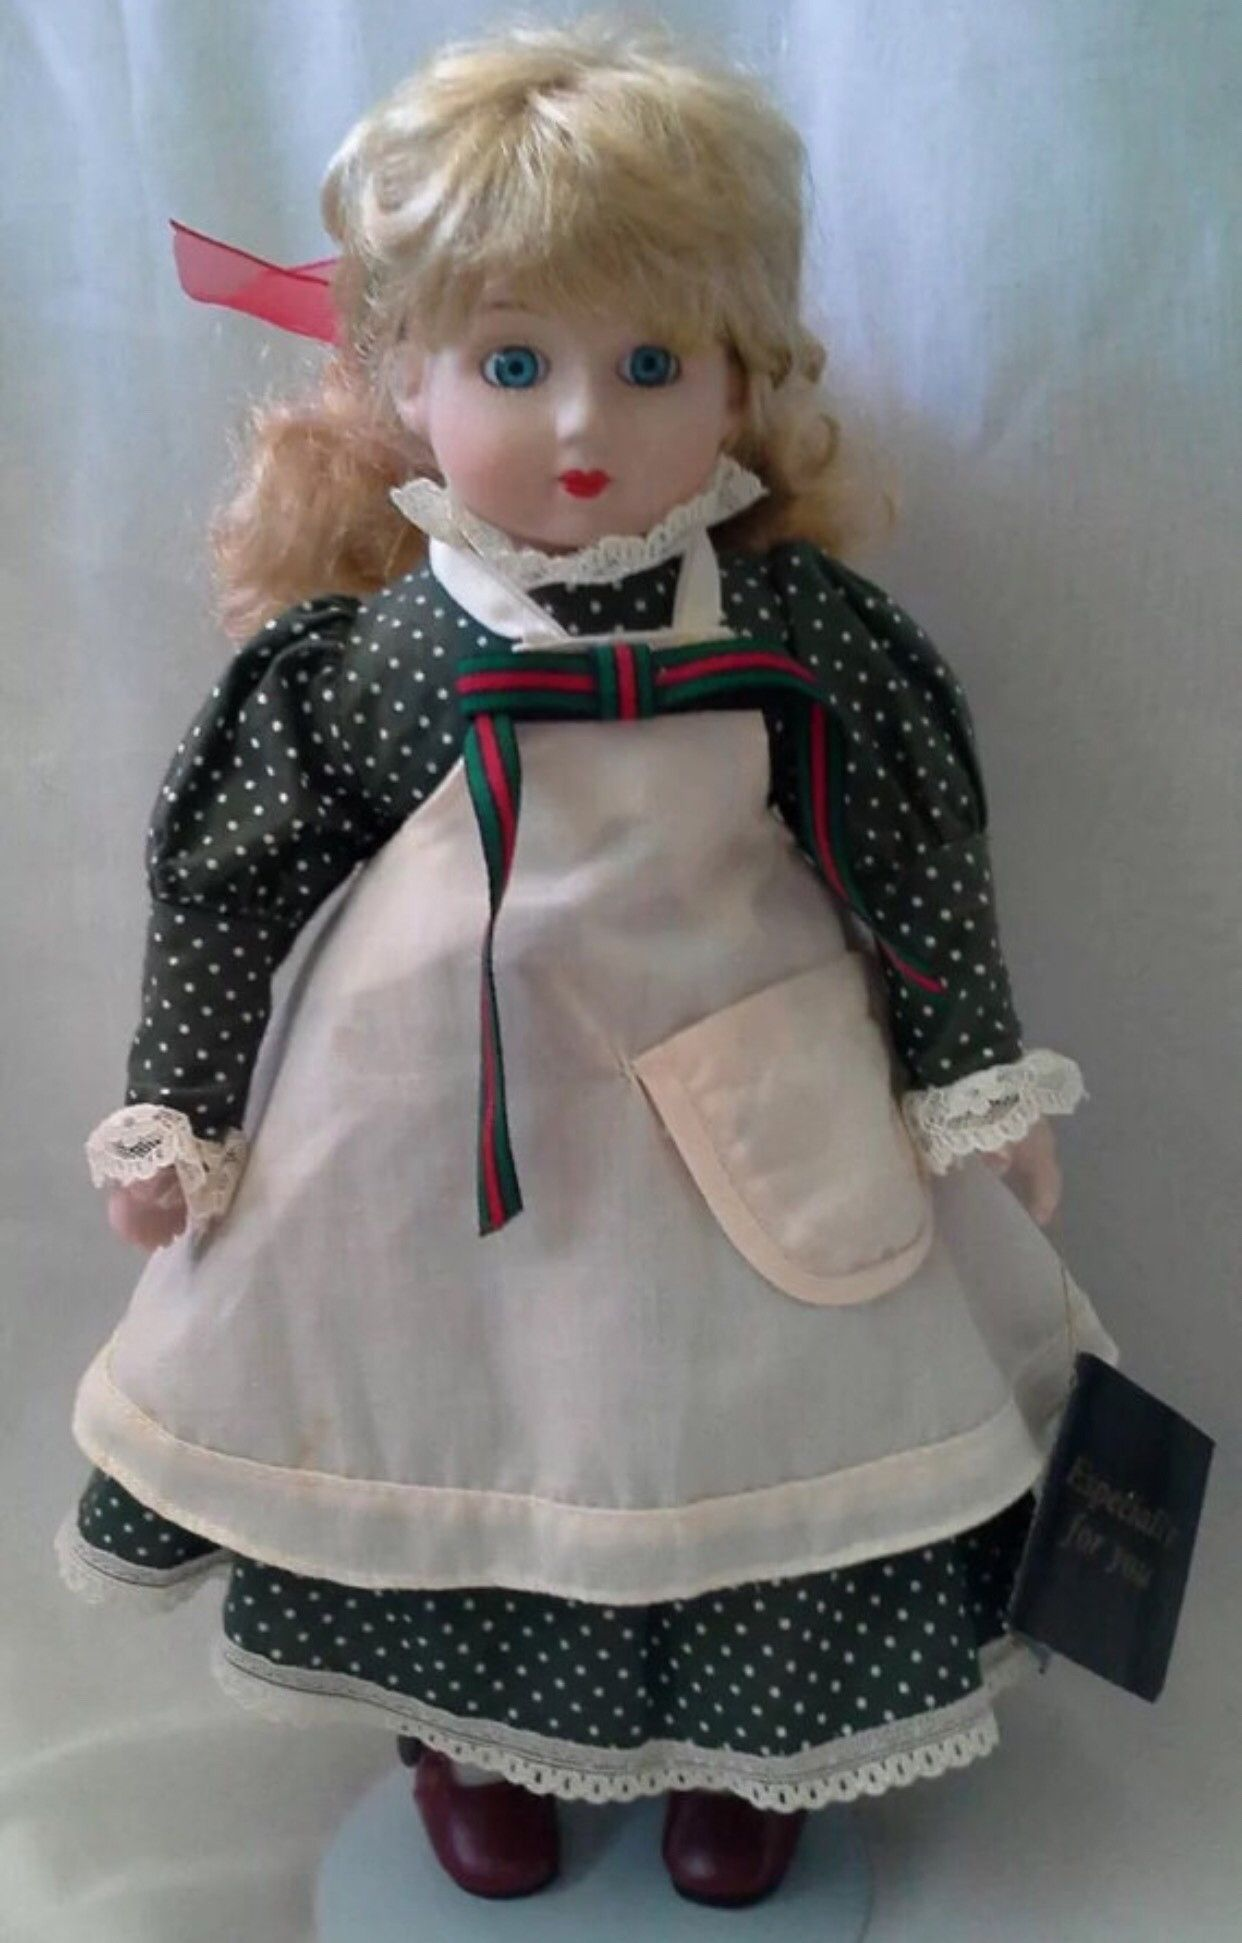 "Vintage Collectible Gorgeous Ceramic Doll by House of Lloyd 14"" Tall"